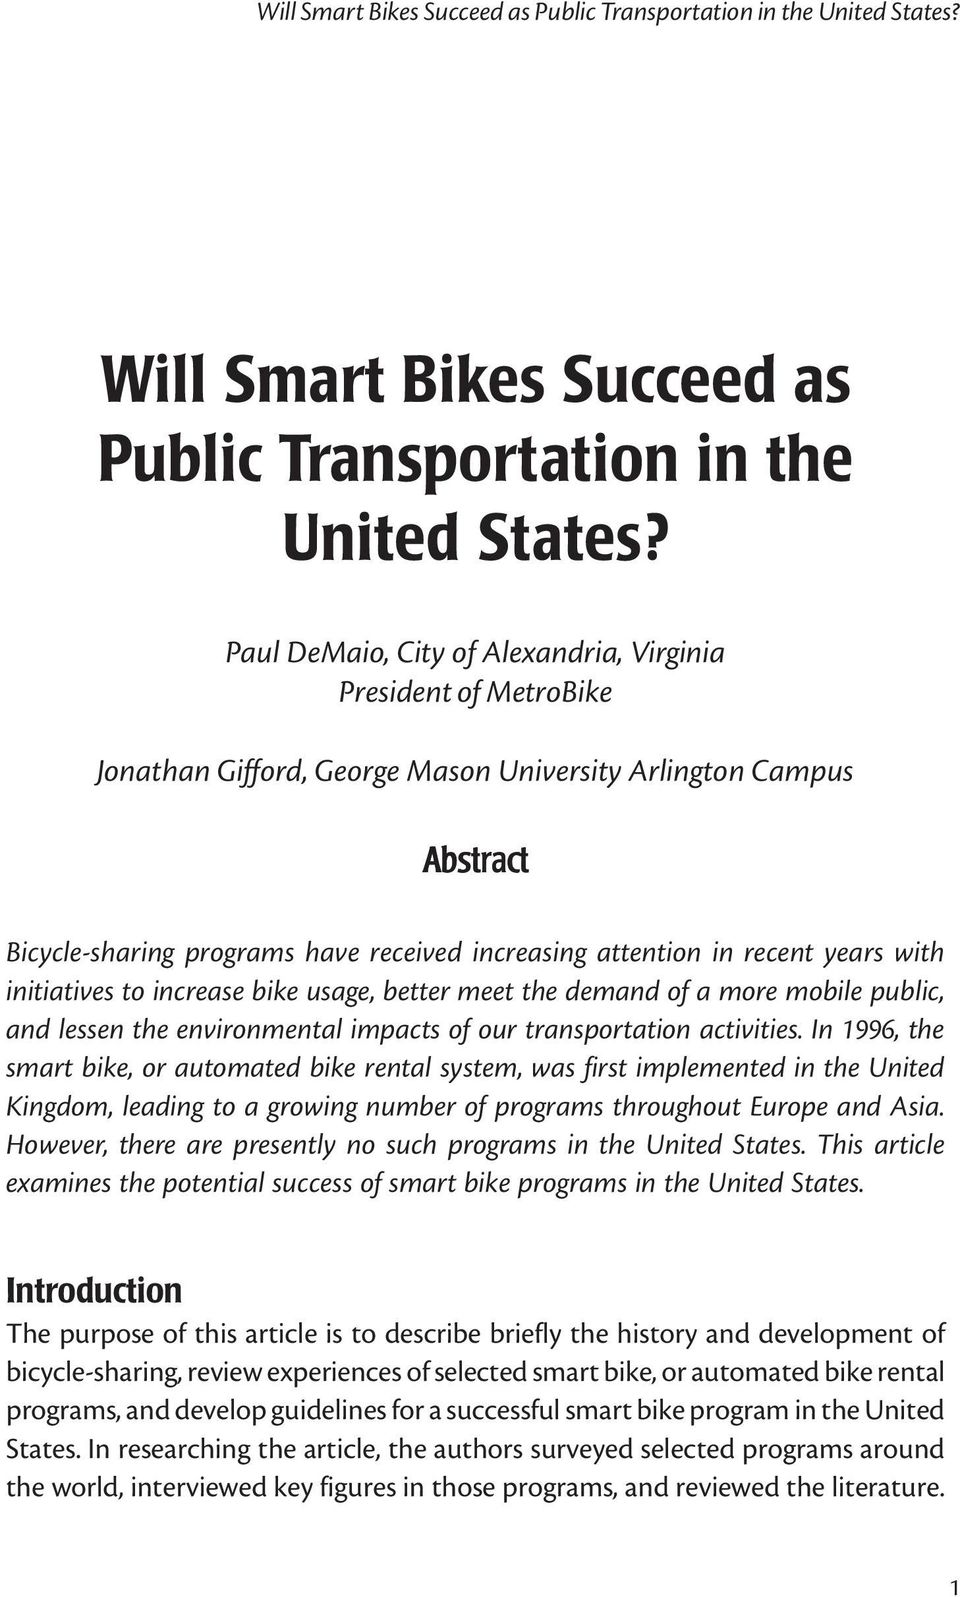 recent years with initiatives to increase bike usage, better meet the demand of a more mobile public, and lessen the environmental impacts of our transportation activities.